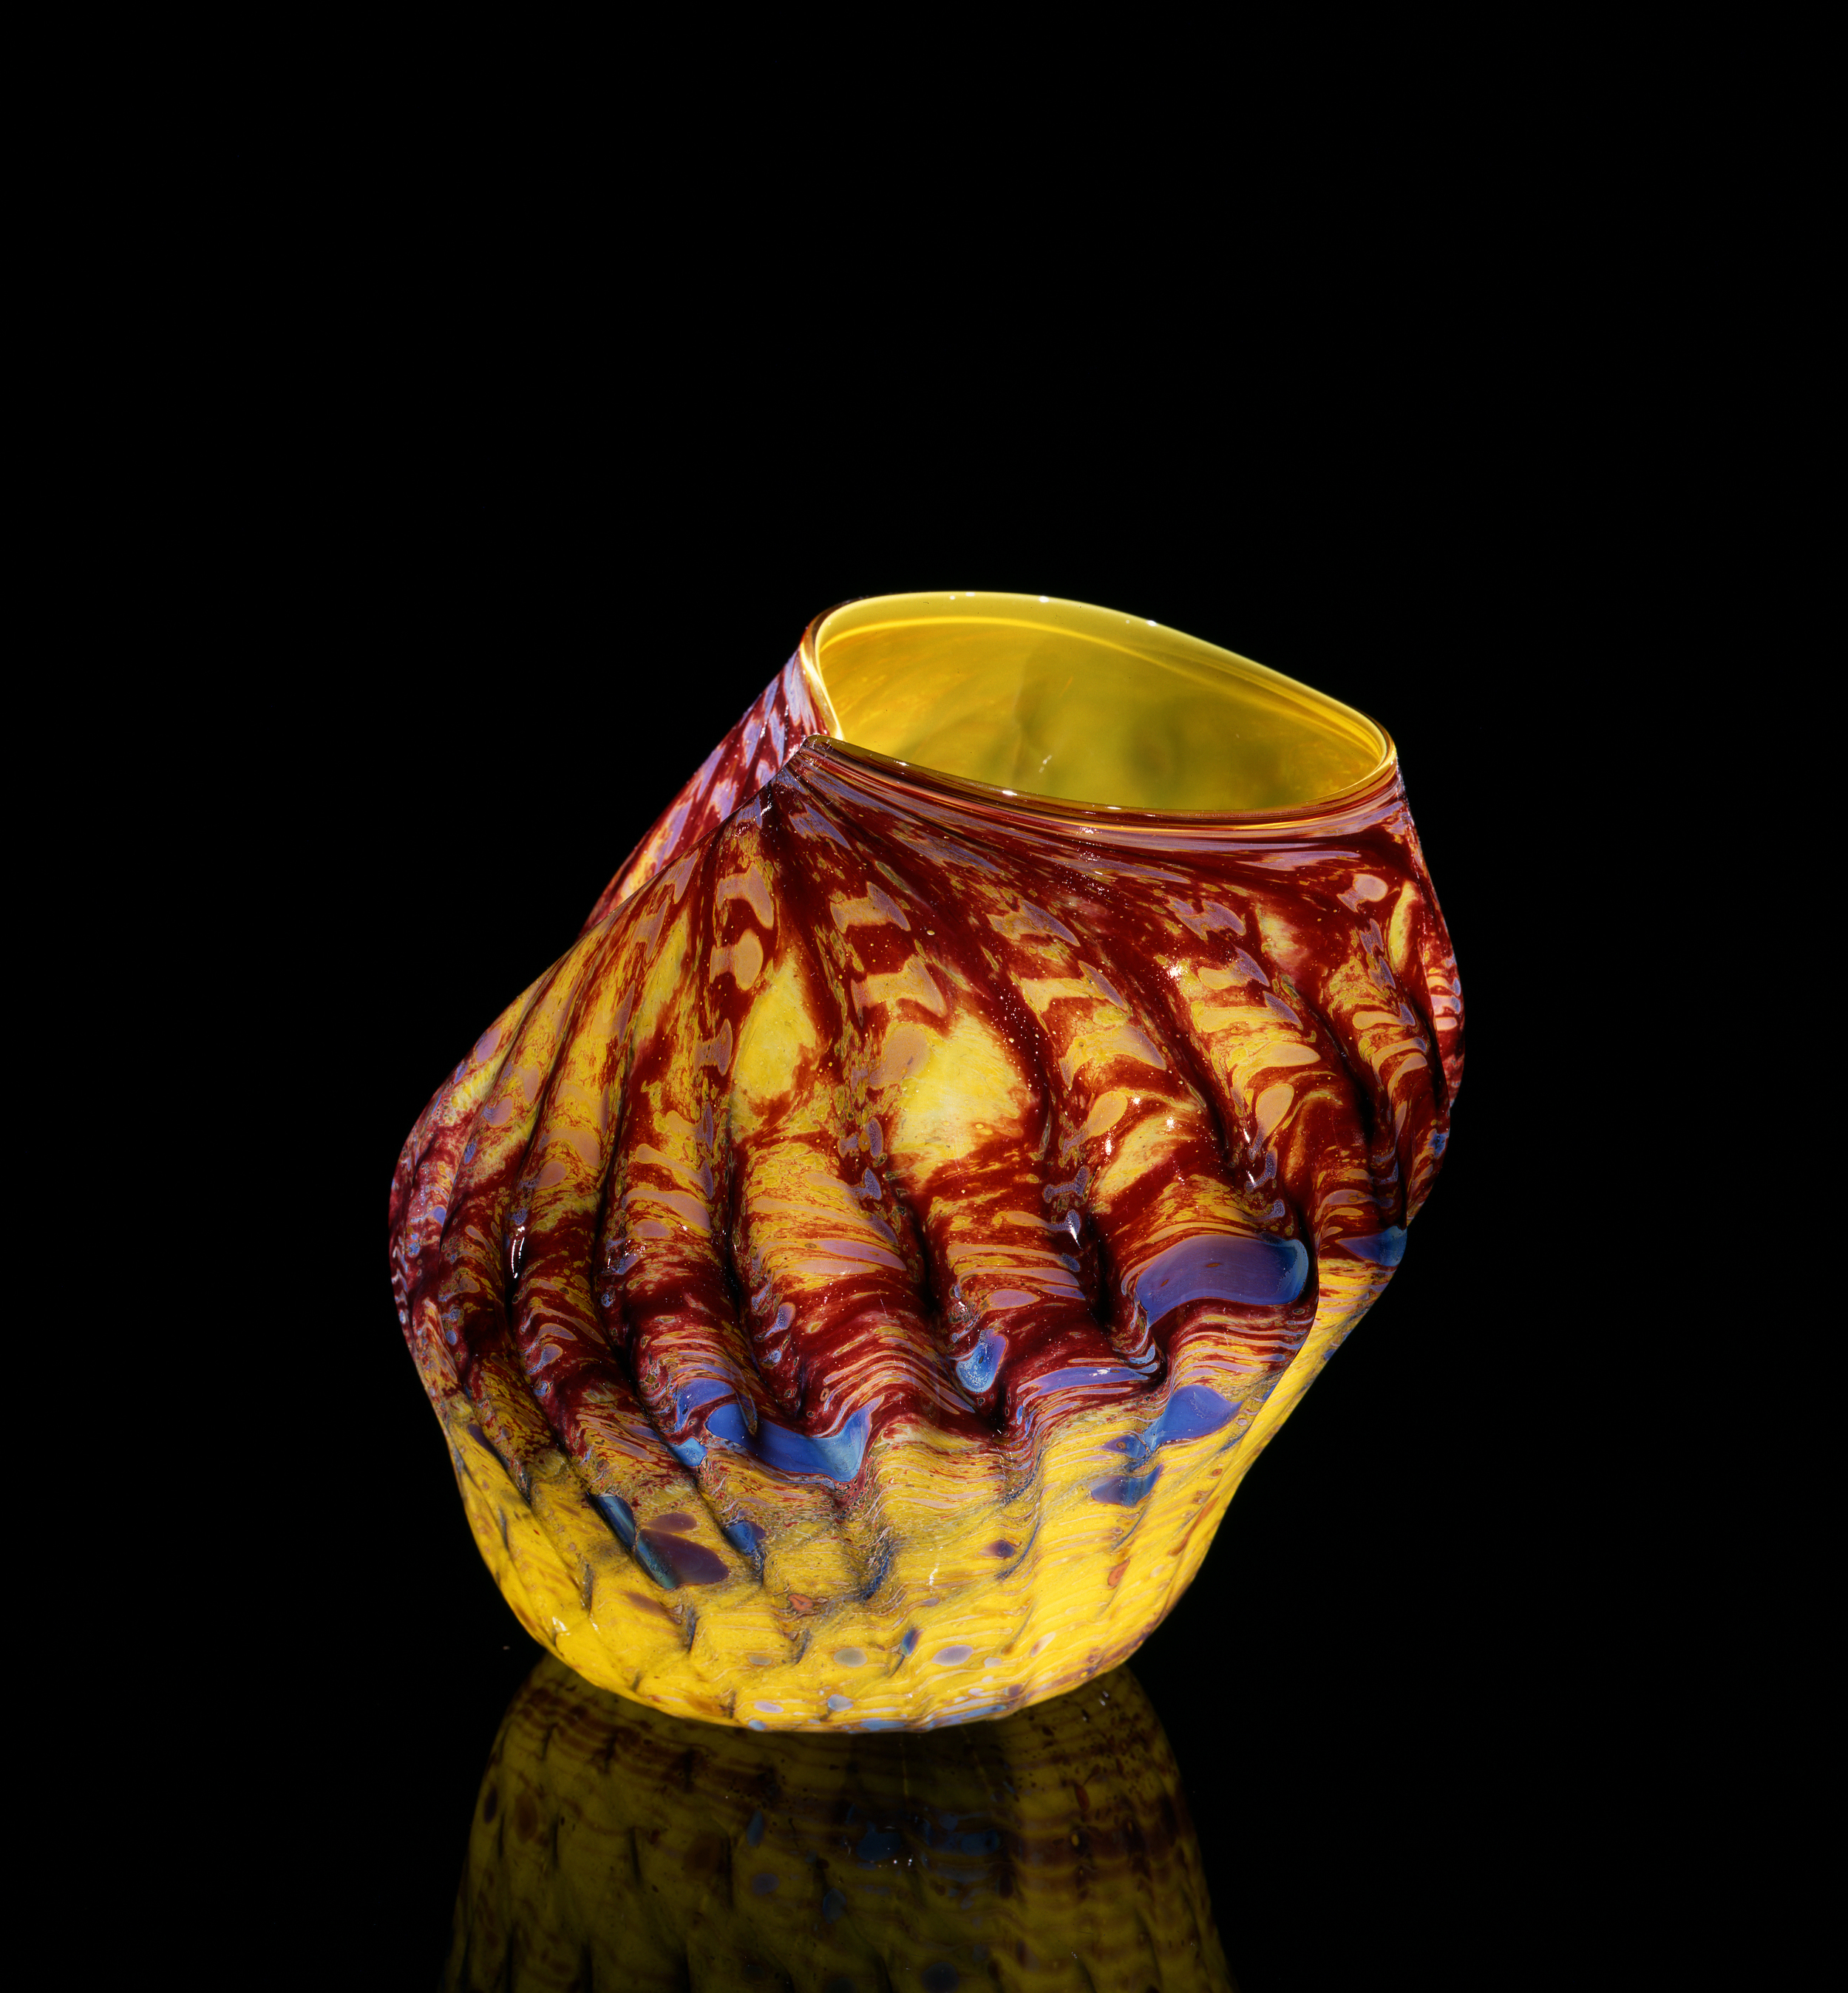 Dale Chihuly, Oxblood and Chartreuse Macchia with Mirrored Jimmies (1982, glass, 10 x 9 x 9 inches), DC.130